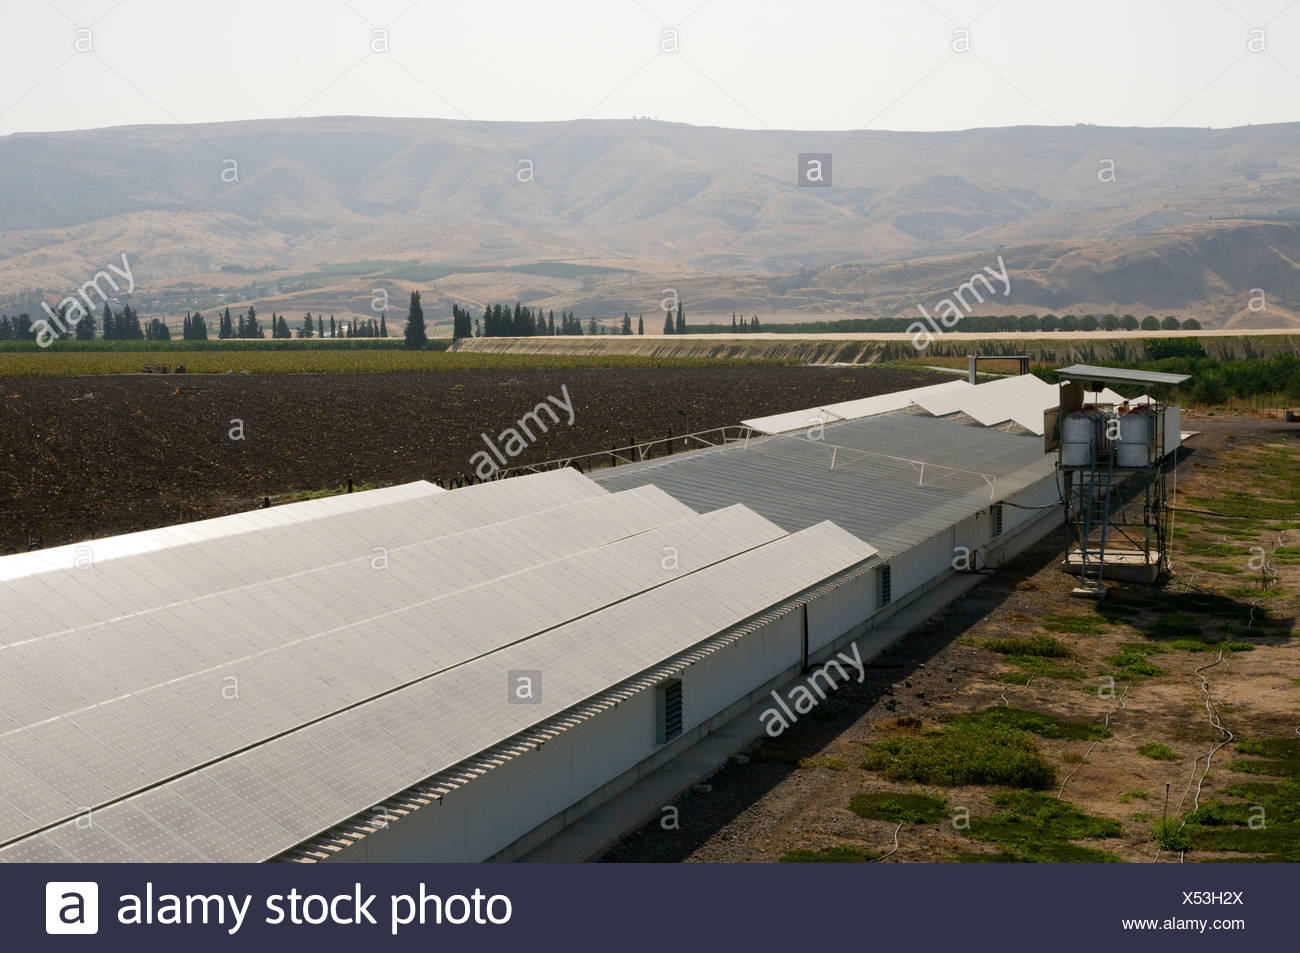 Electricity converting solar panels on a roof of a Turkey coop - Stock Image